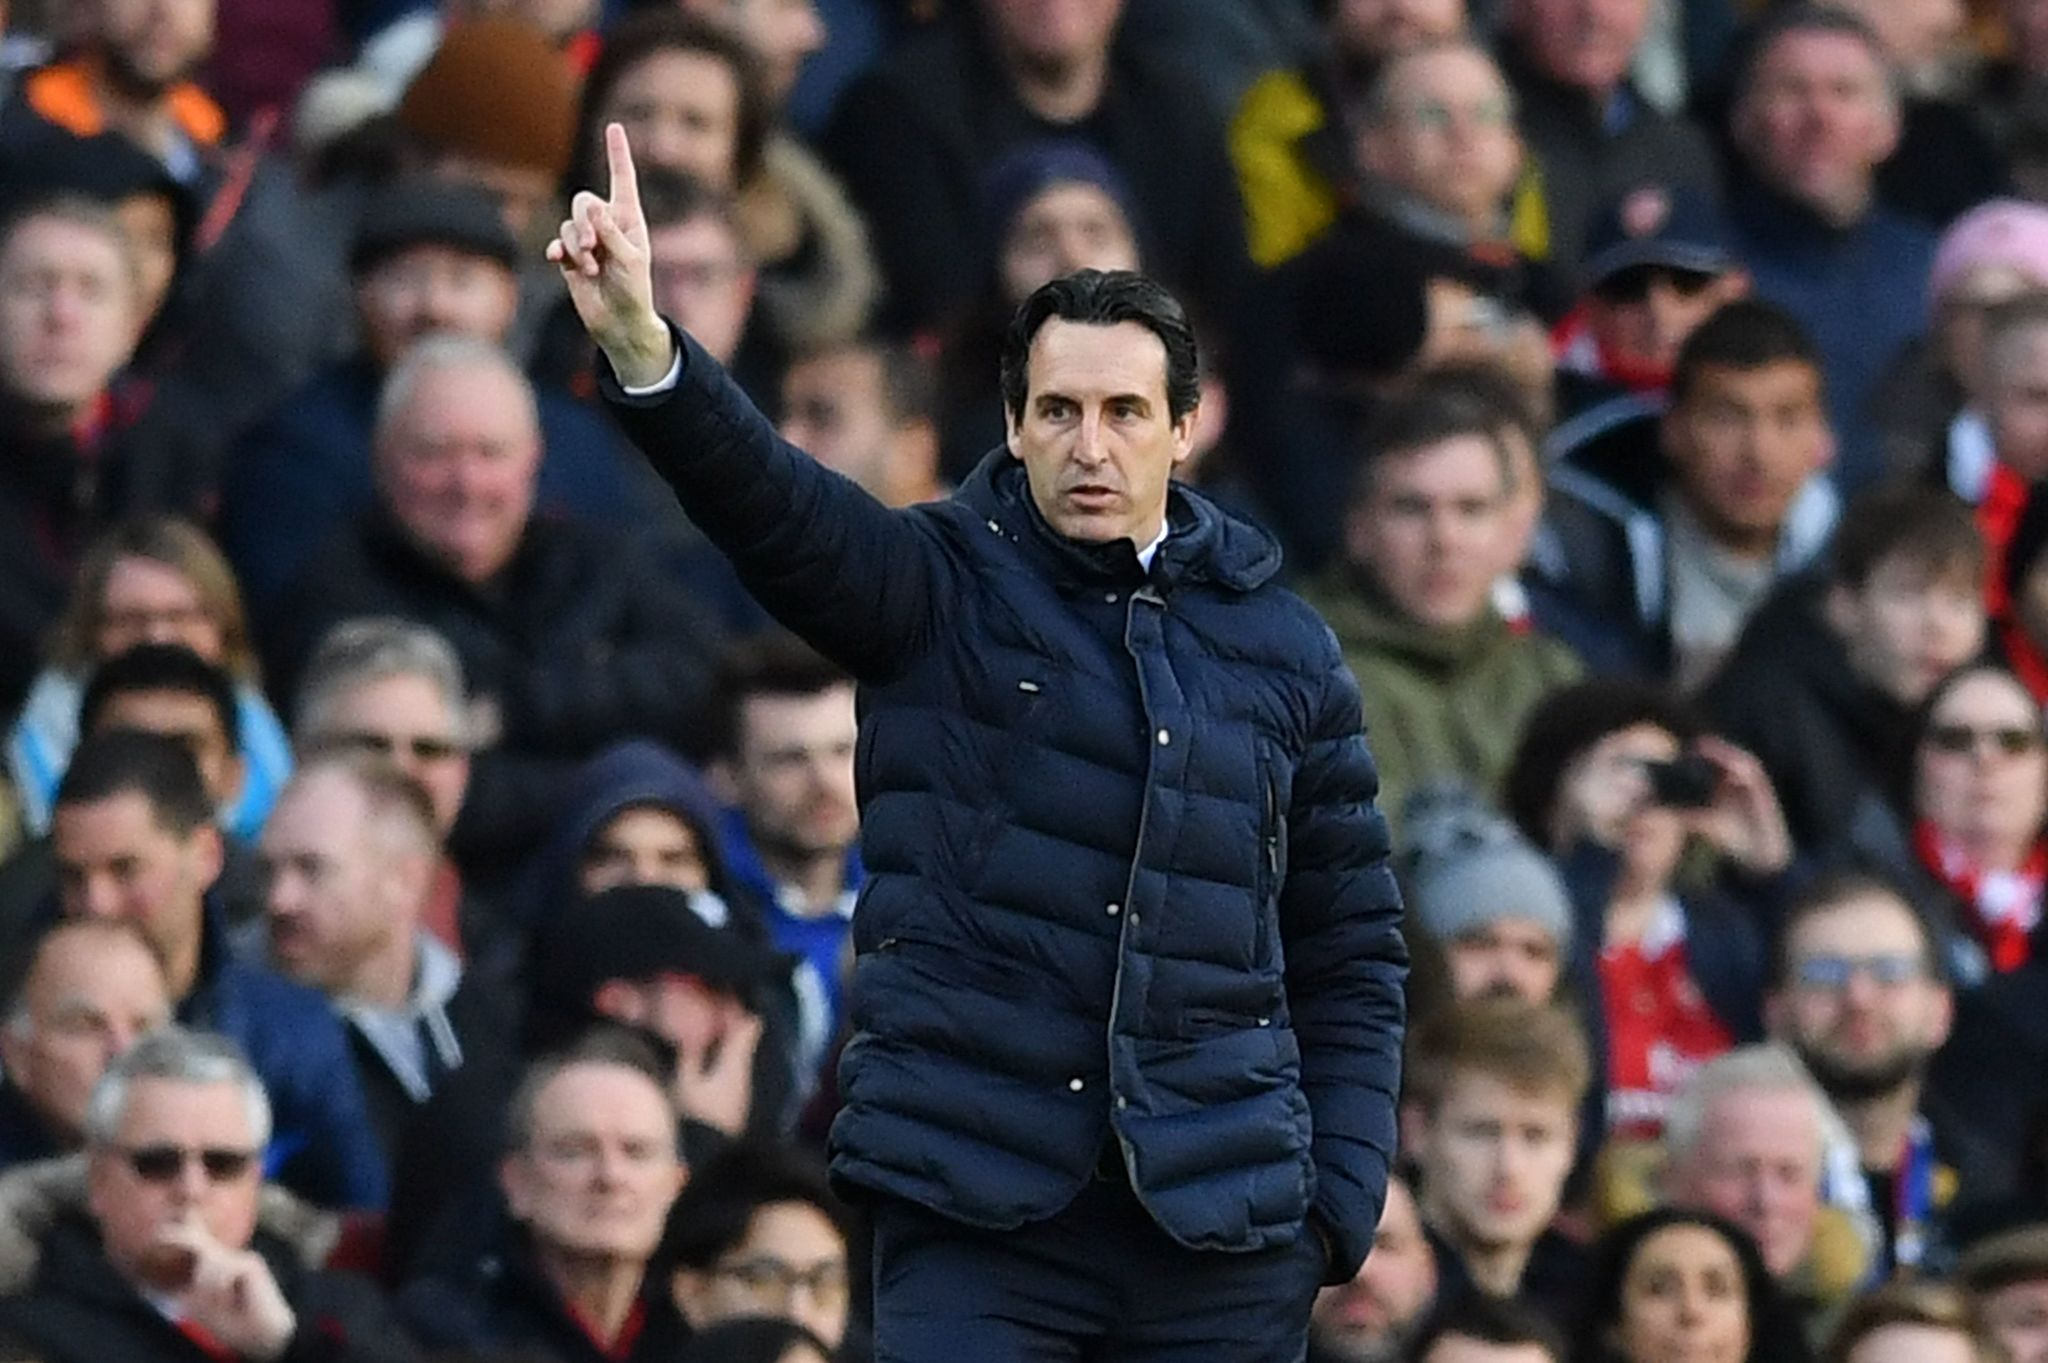 Arsenals Spanish head coach Unai <HIT>Emery</HIT> gestures from the touchline during the English Premier League football match between Arsenal and Manchester United at the Emirates Stadium in London on March 10, 2019. (Photo by Ben STANSALL / AFP) / RESTRICTED TO EDITORIAL USE. No use with unauthorized audio, video, data, fixture lists, club/league logos or live services. Online in-match use limited to 120 images. An additional 40 images may be used in extra time. No video emulation. Social media in-match use limited to 120 images. An additional 40 images may be used in extra time. No use in betting publications, games or single club/league/player publications. /